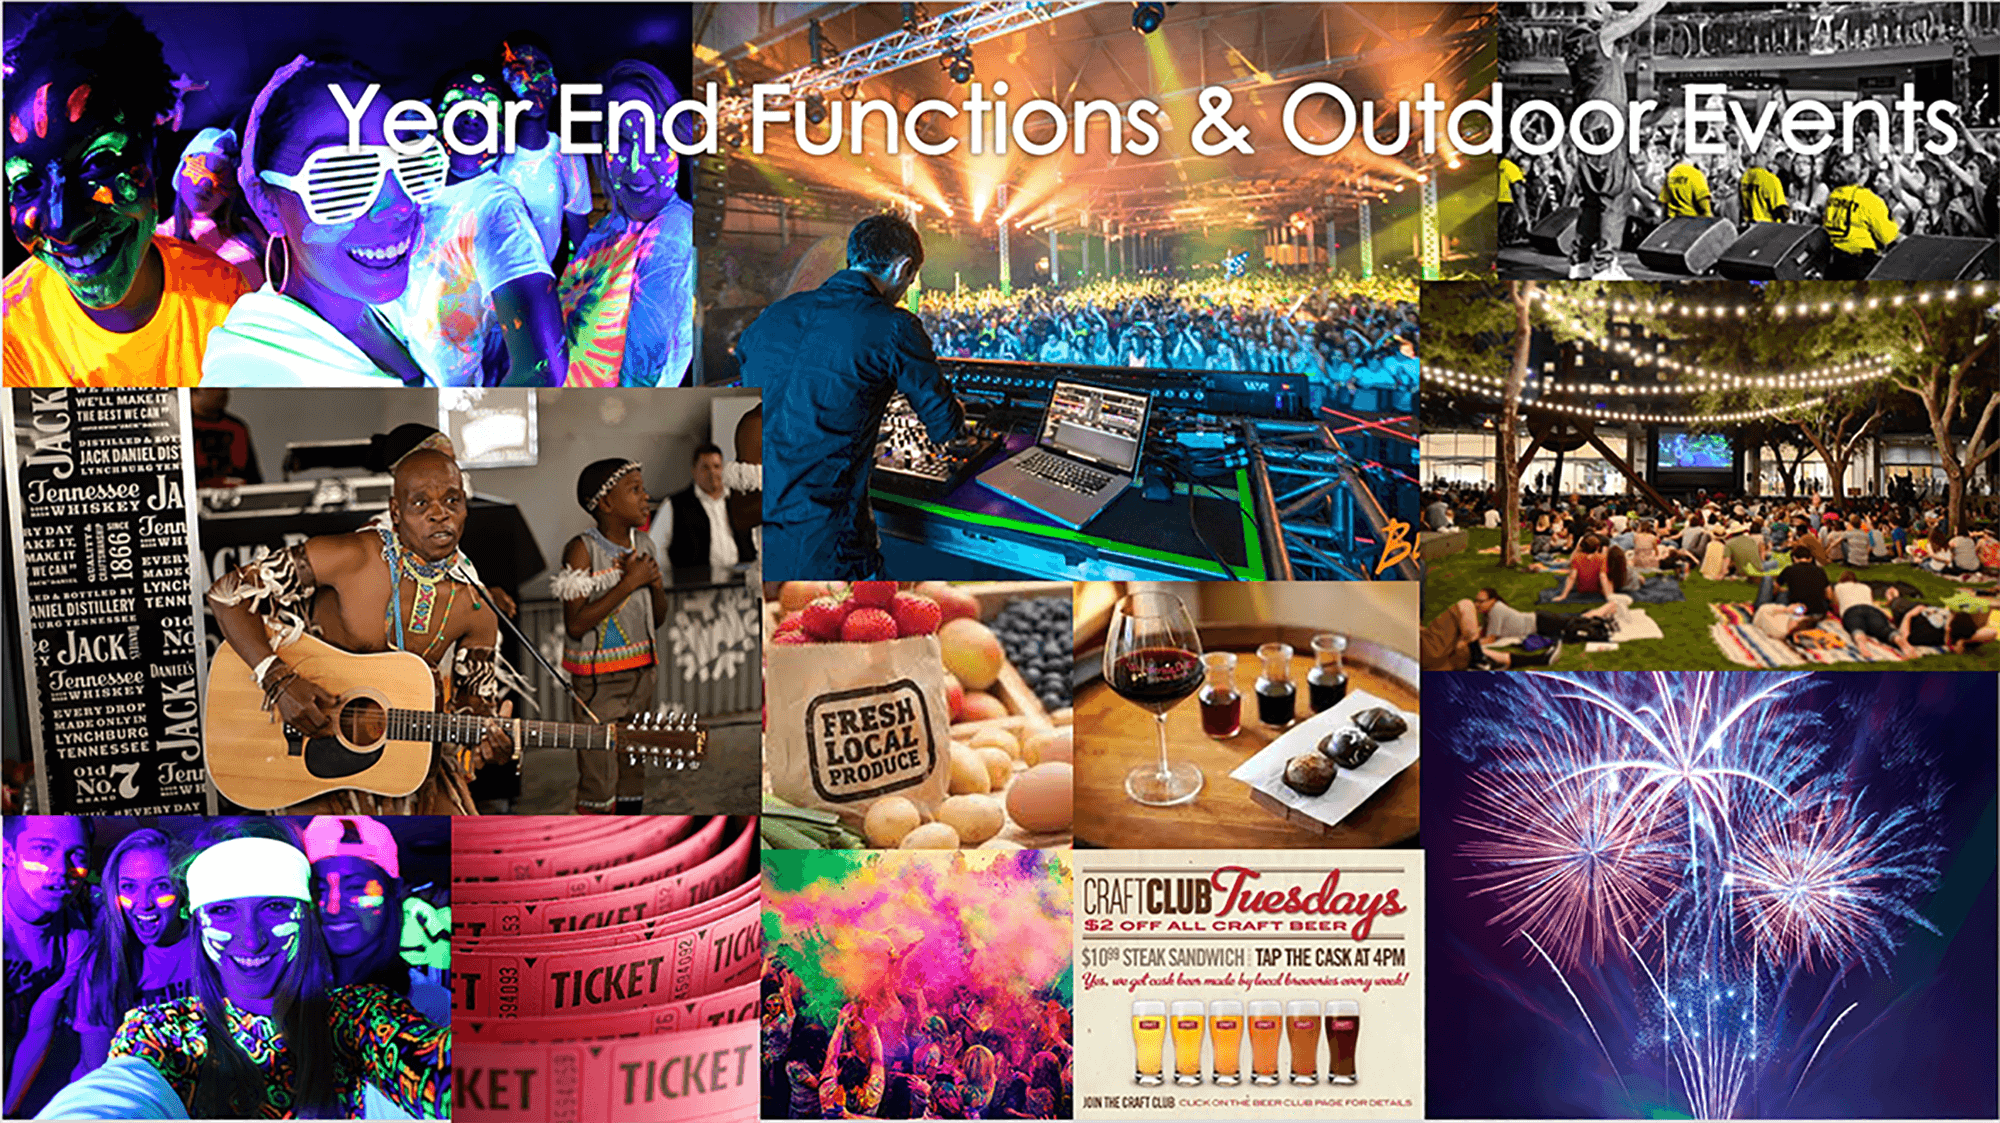 Year End Functions & Outdoor Events